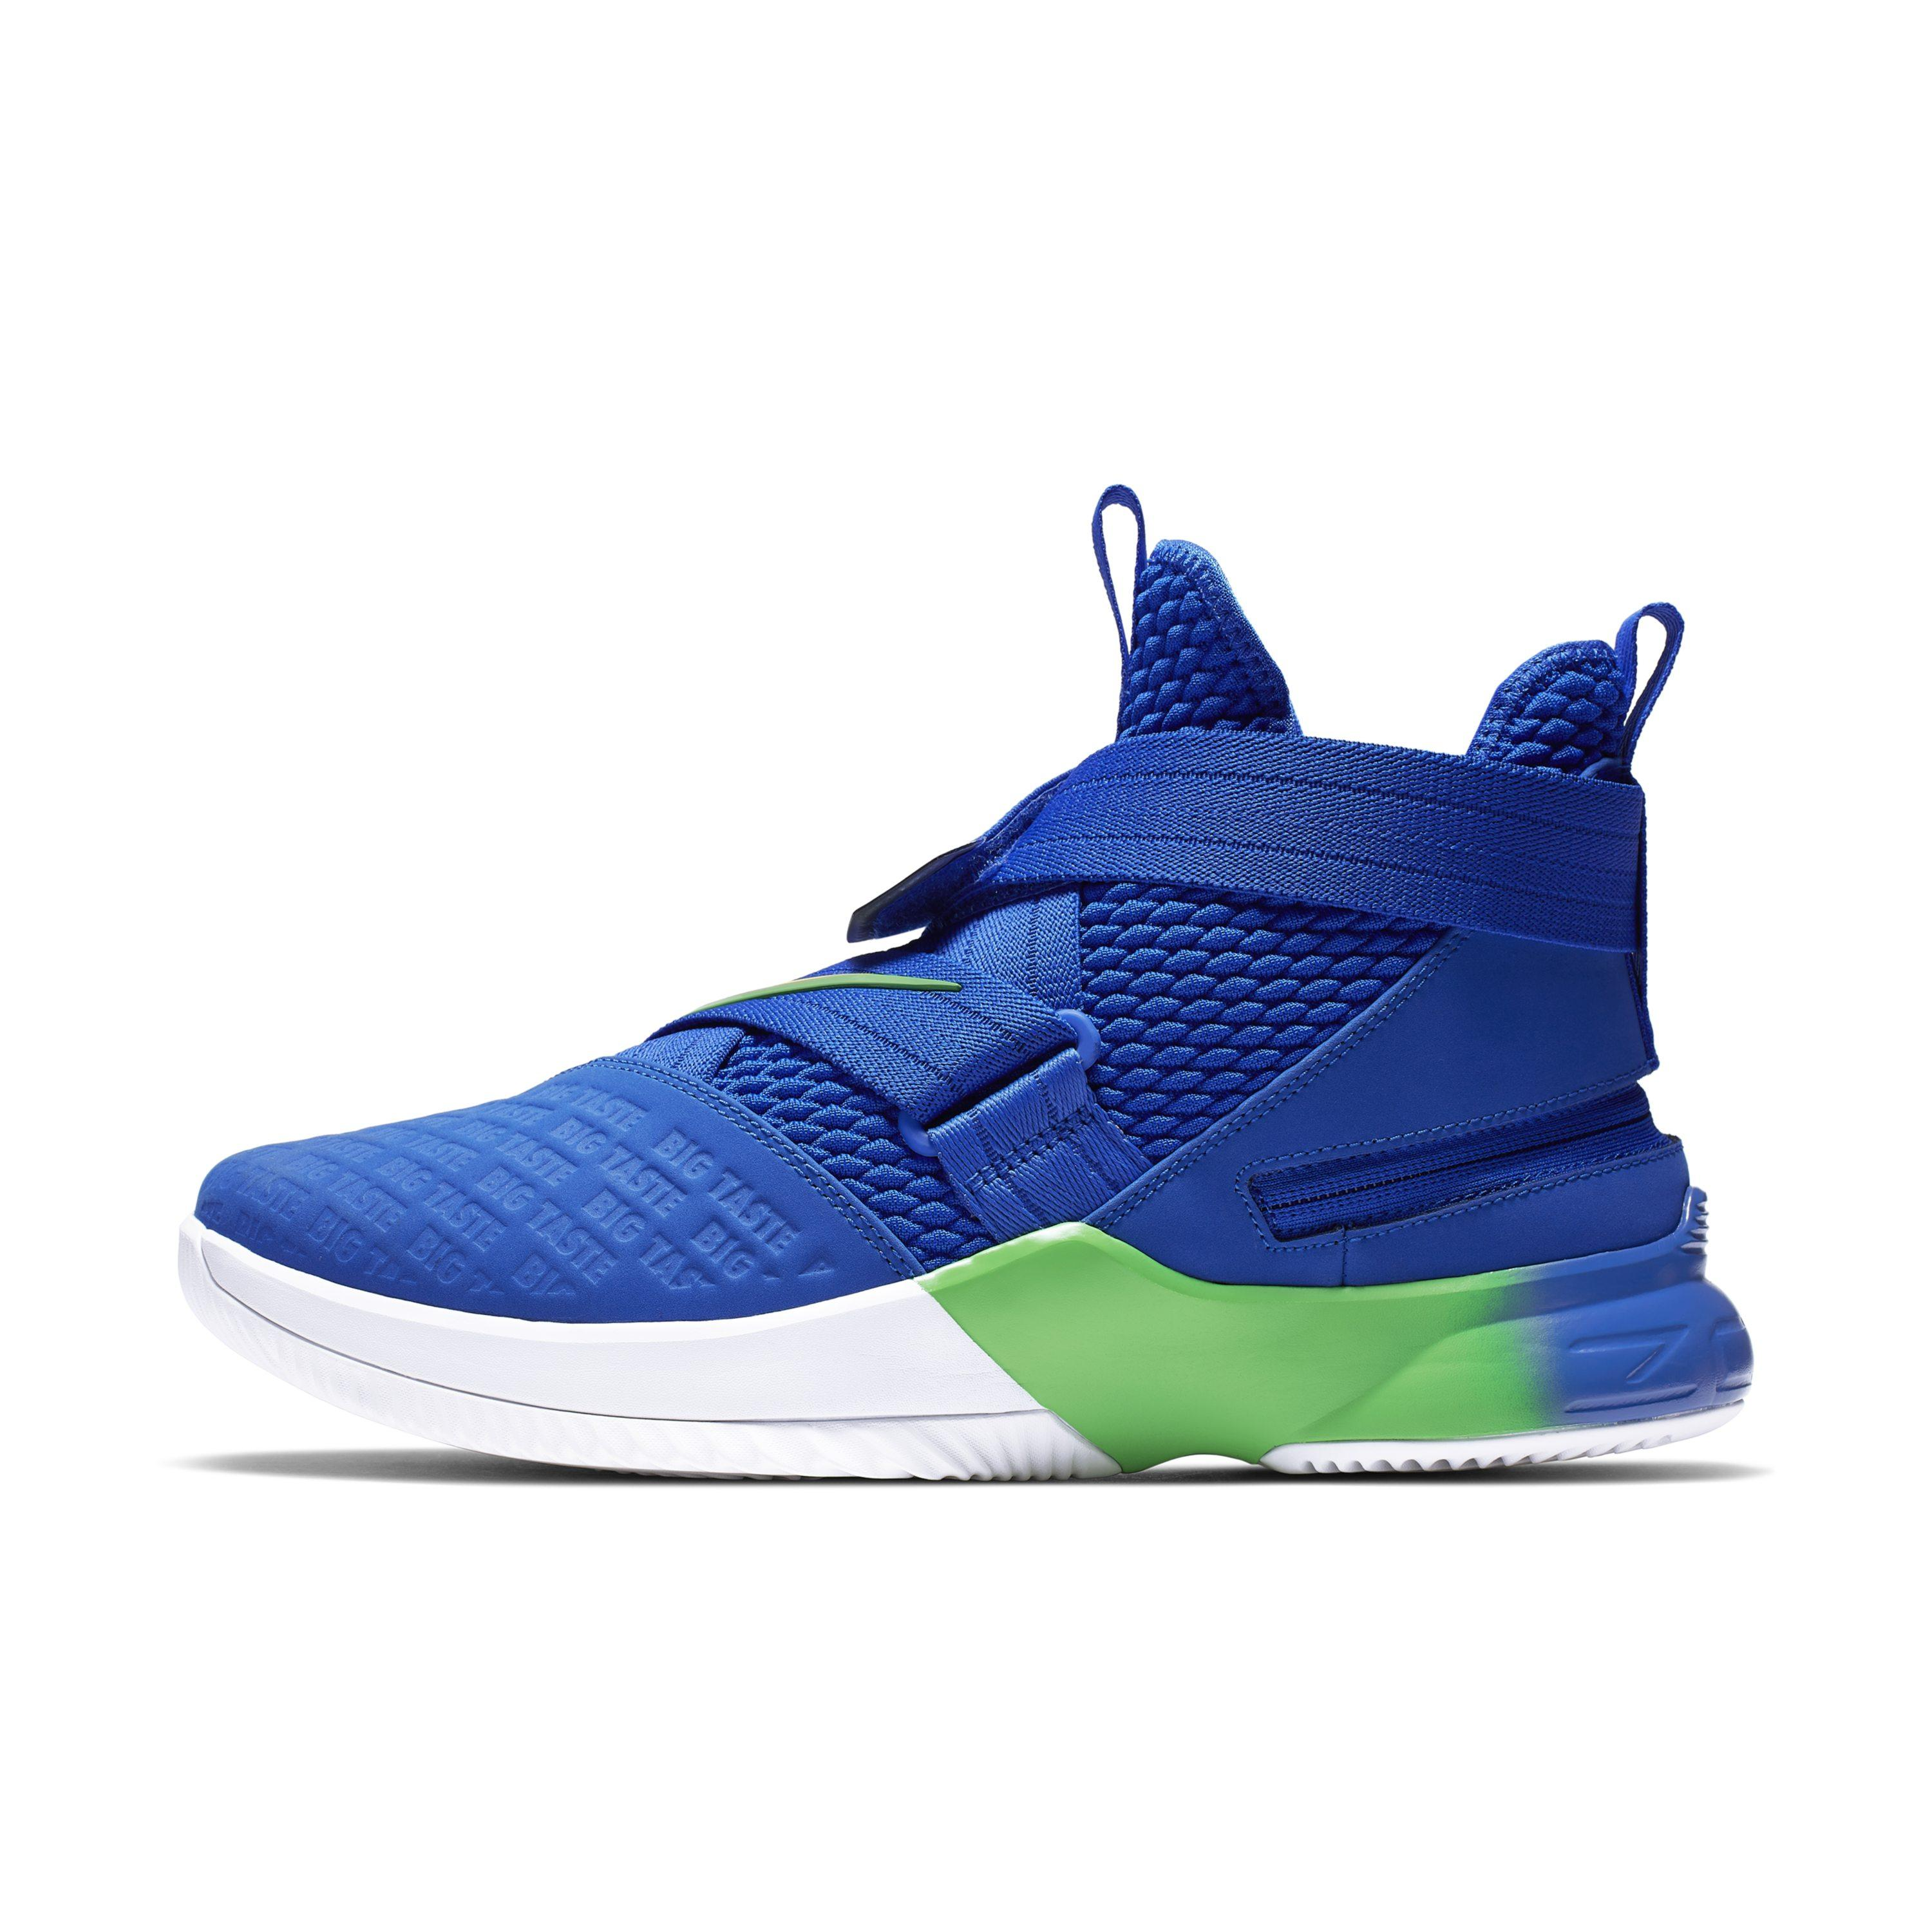 96640ba8c81 Nike Lebron Soldier 12 Flyease Basketball Shoe in Blue for Men - Lyst